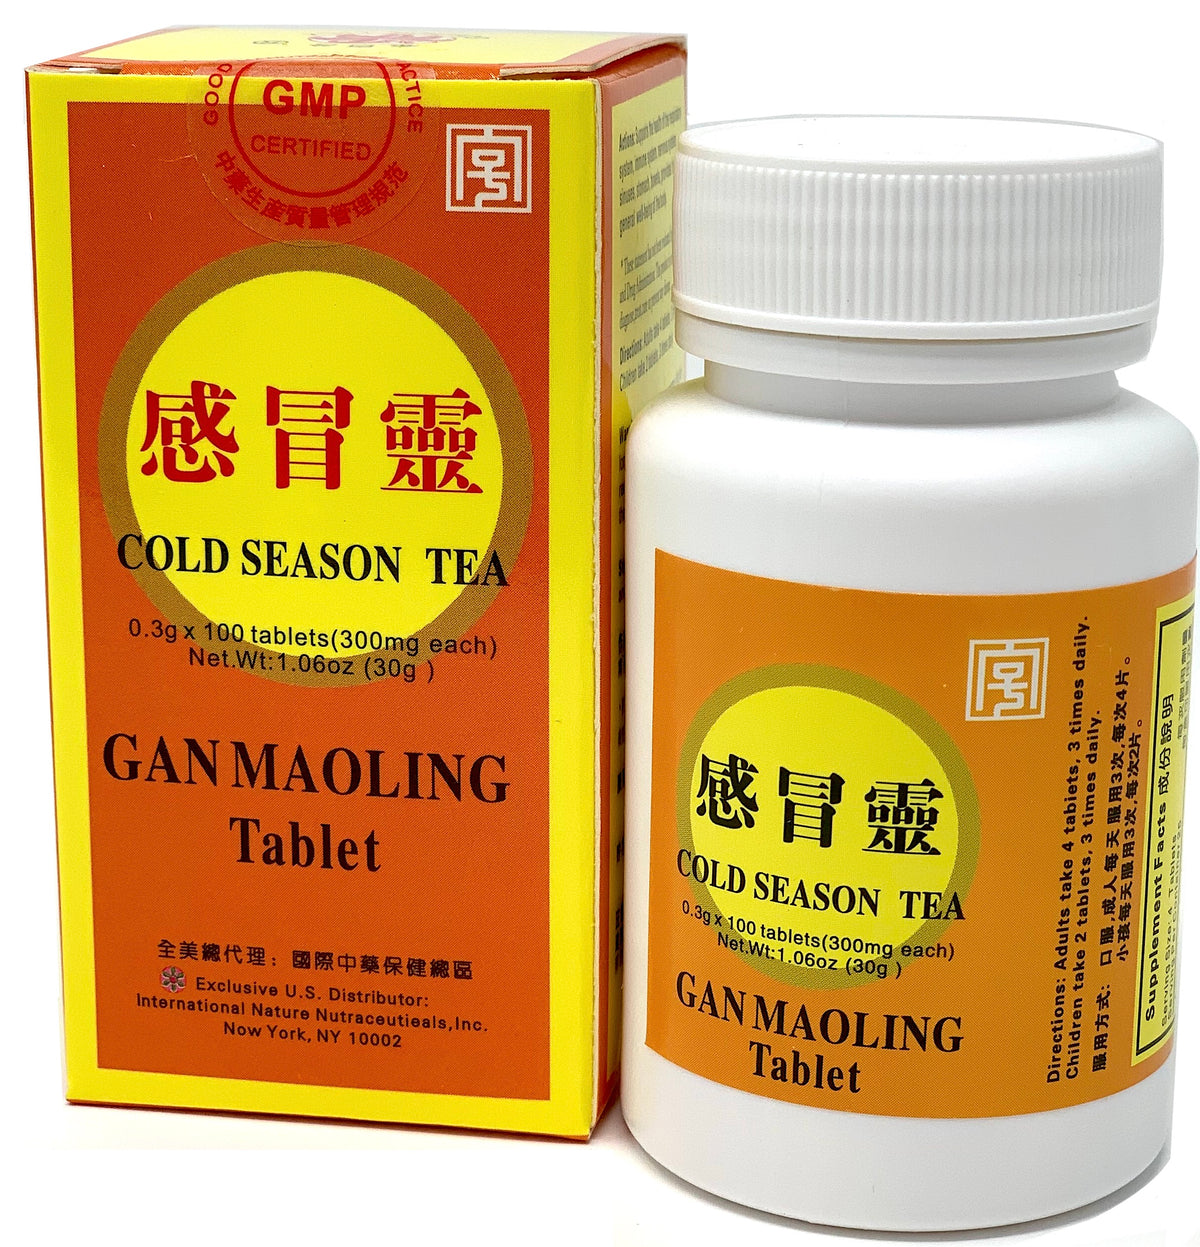 Cold Season Tea (Gan Maoling Tablet) 感冒灵